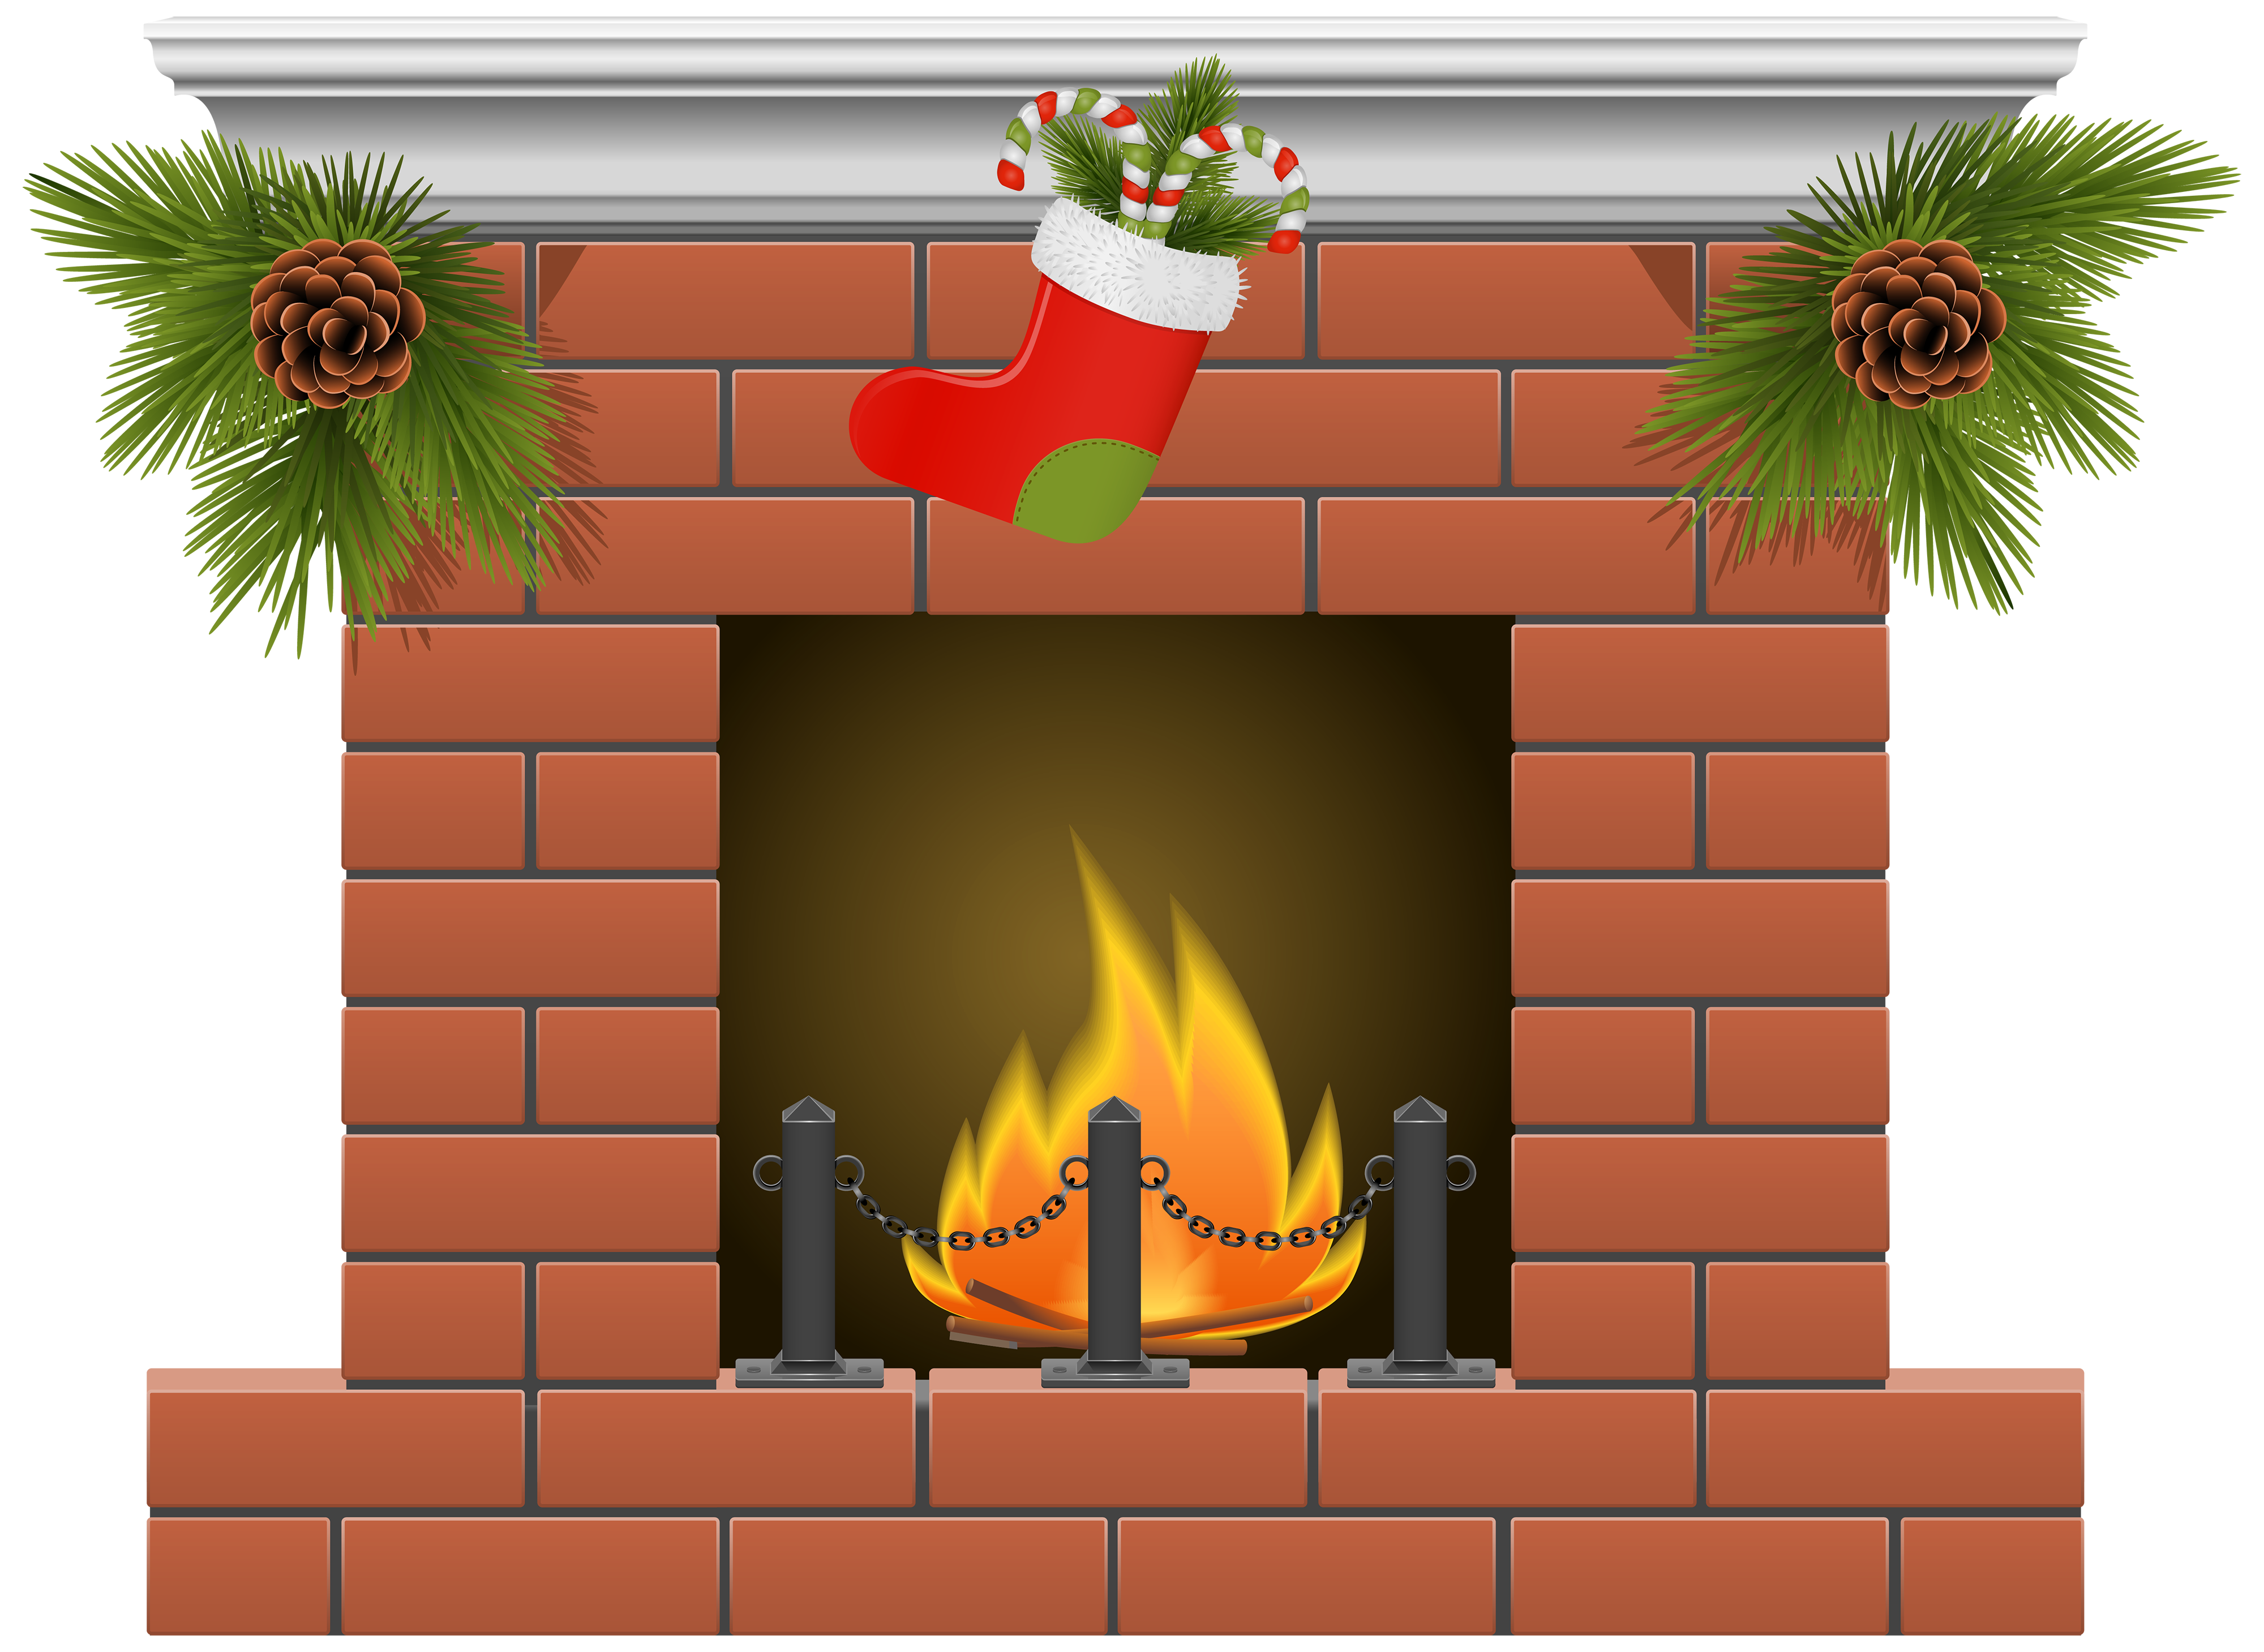 Christmas chimney clipart picture black and white stock 28+ Collection of Christmas Chimney Clipart   High quality, free ... picture black and white stock